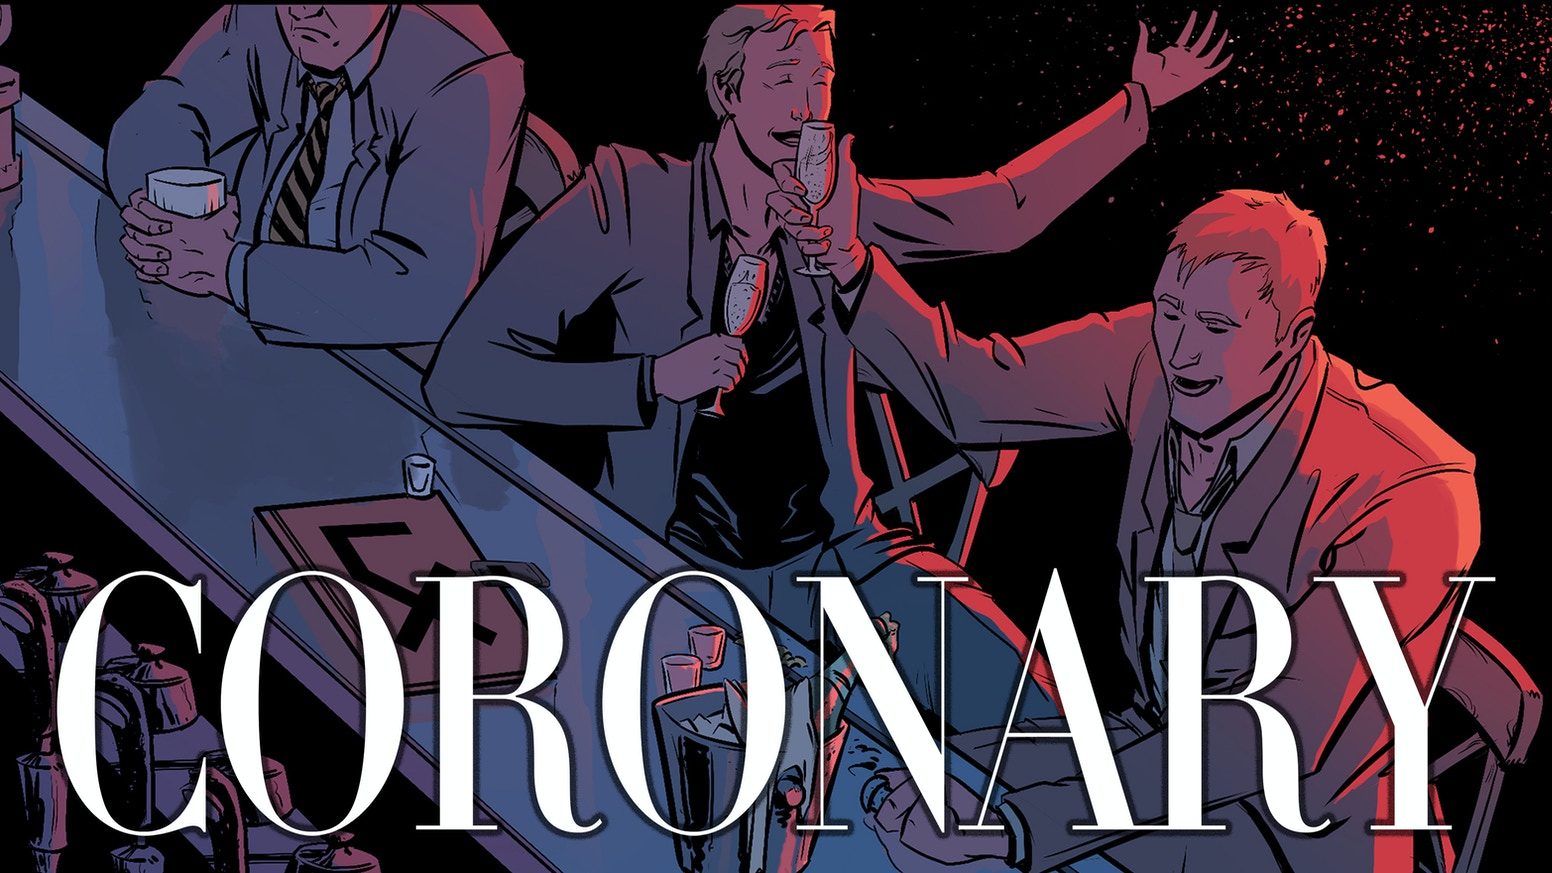 Black Mirror meets Romeo and Juliet in the action romance comic, Coronary. Episodes 1-3 are available now!